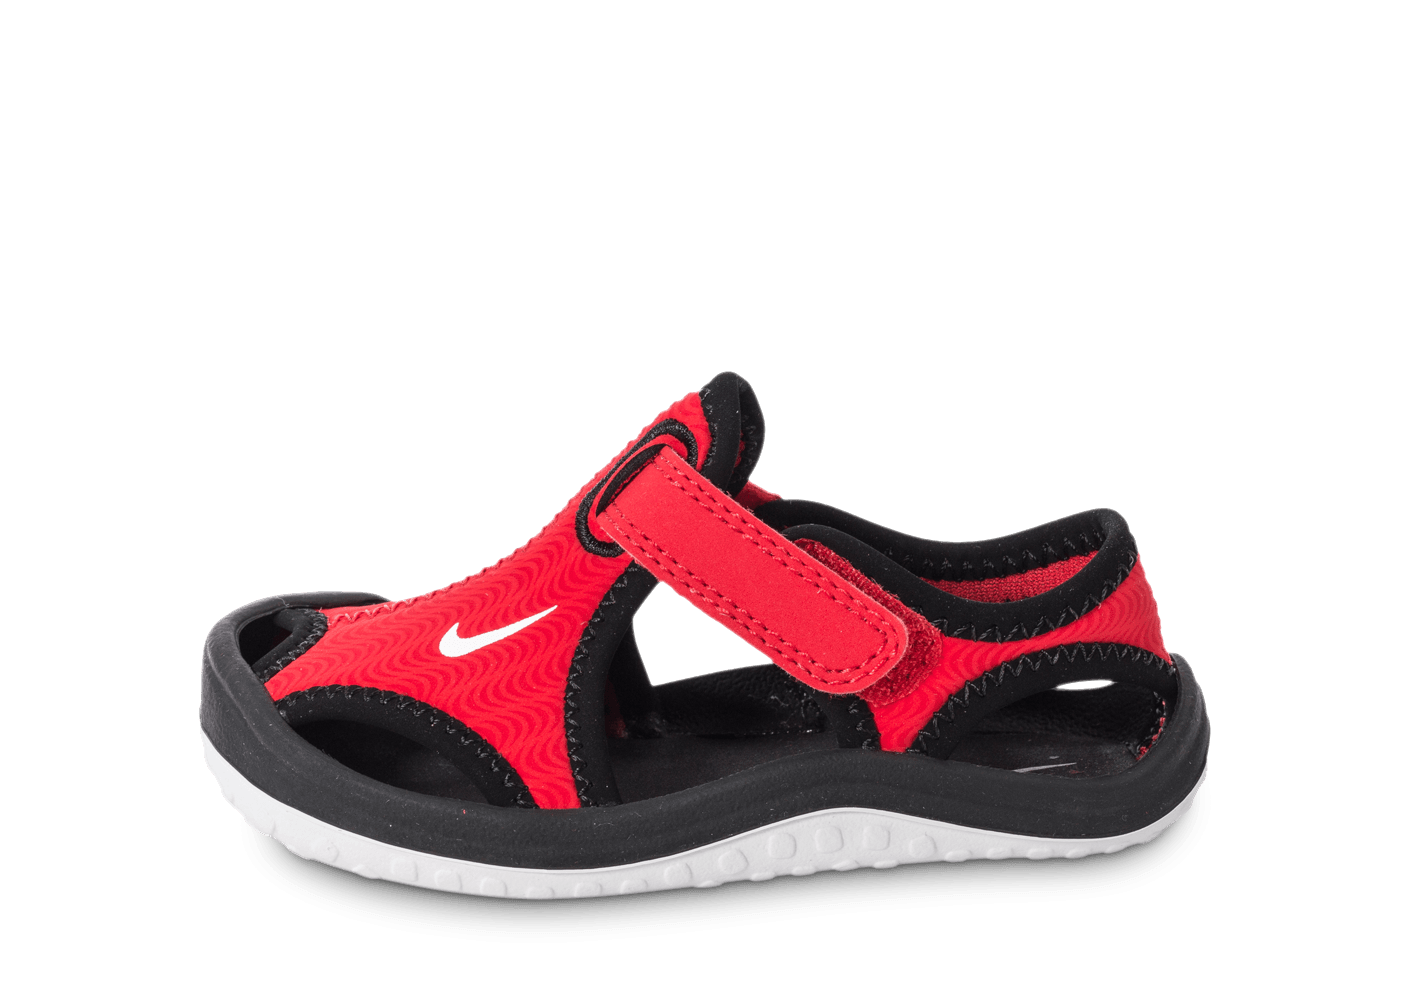 100% authentic e6505 703e7 chaussures nike sunray protect bebe rouge vue exterieure